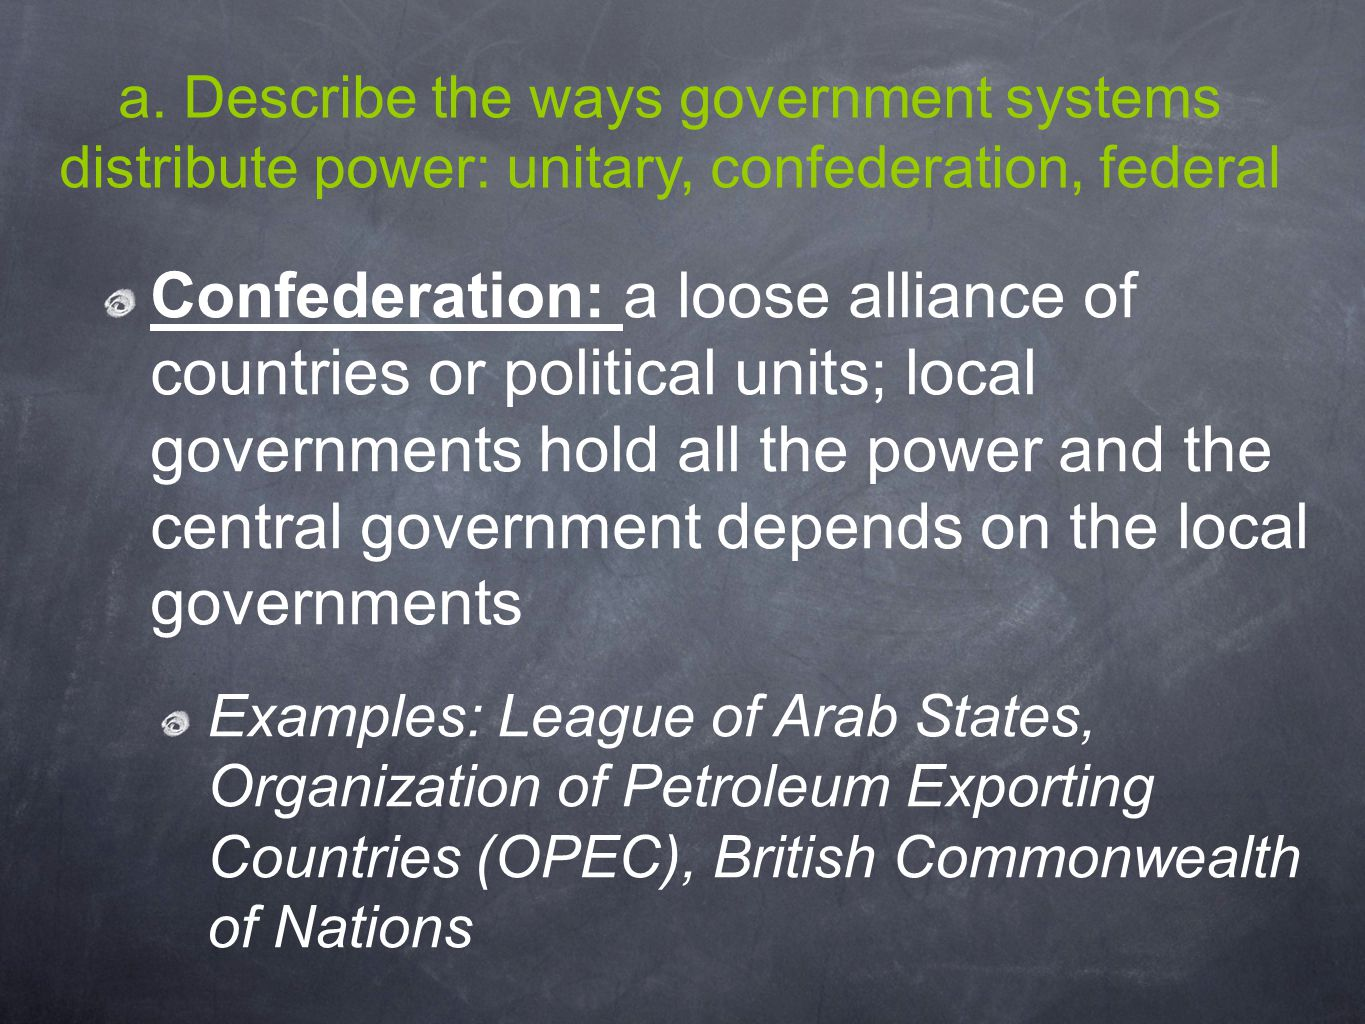 a. Describe the ways government systems distribute power: unitary, confederation, federal